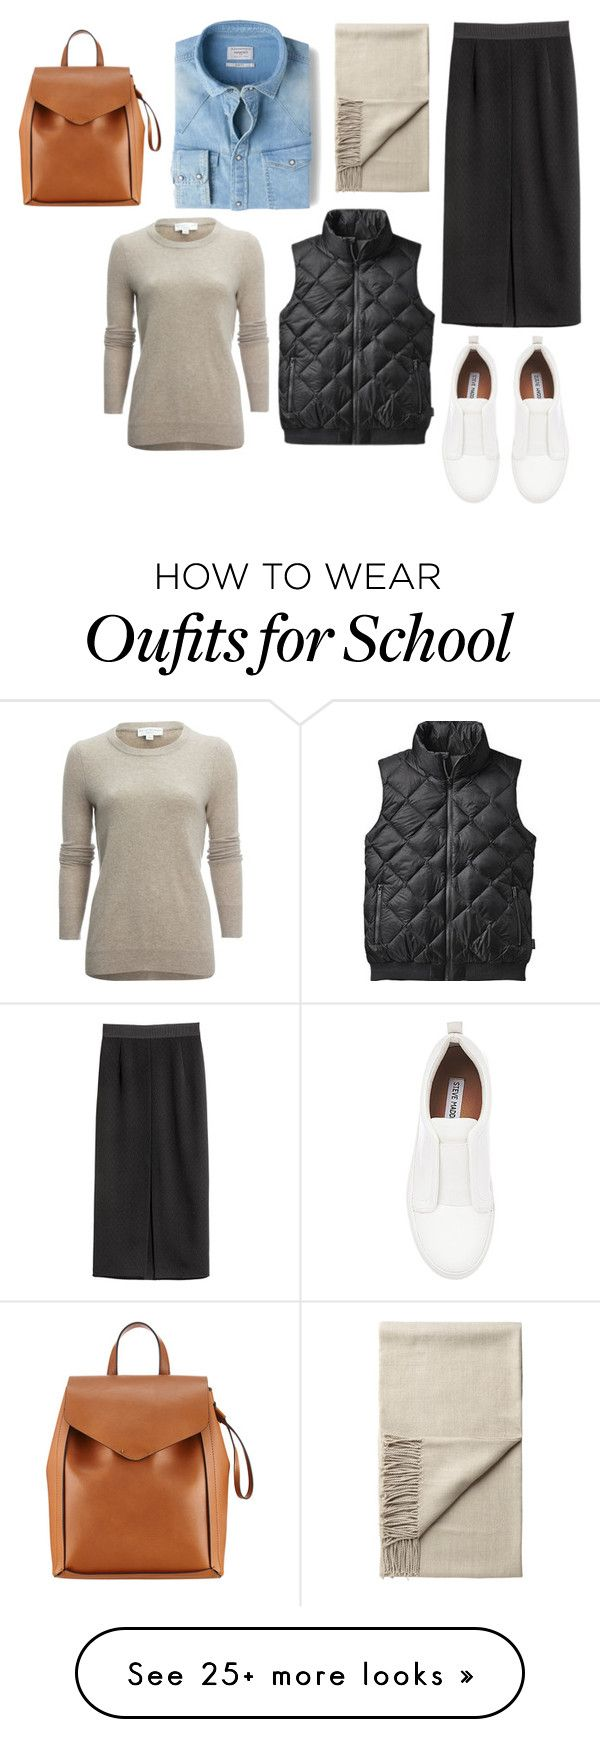 """""""Just Another Day at School"""" by design360 on Polyvore featuring Monki, MANGO, White + Warren, Patagonia, Steve Madden and Loeffler Randall"""